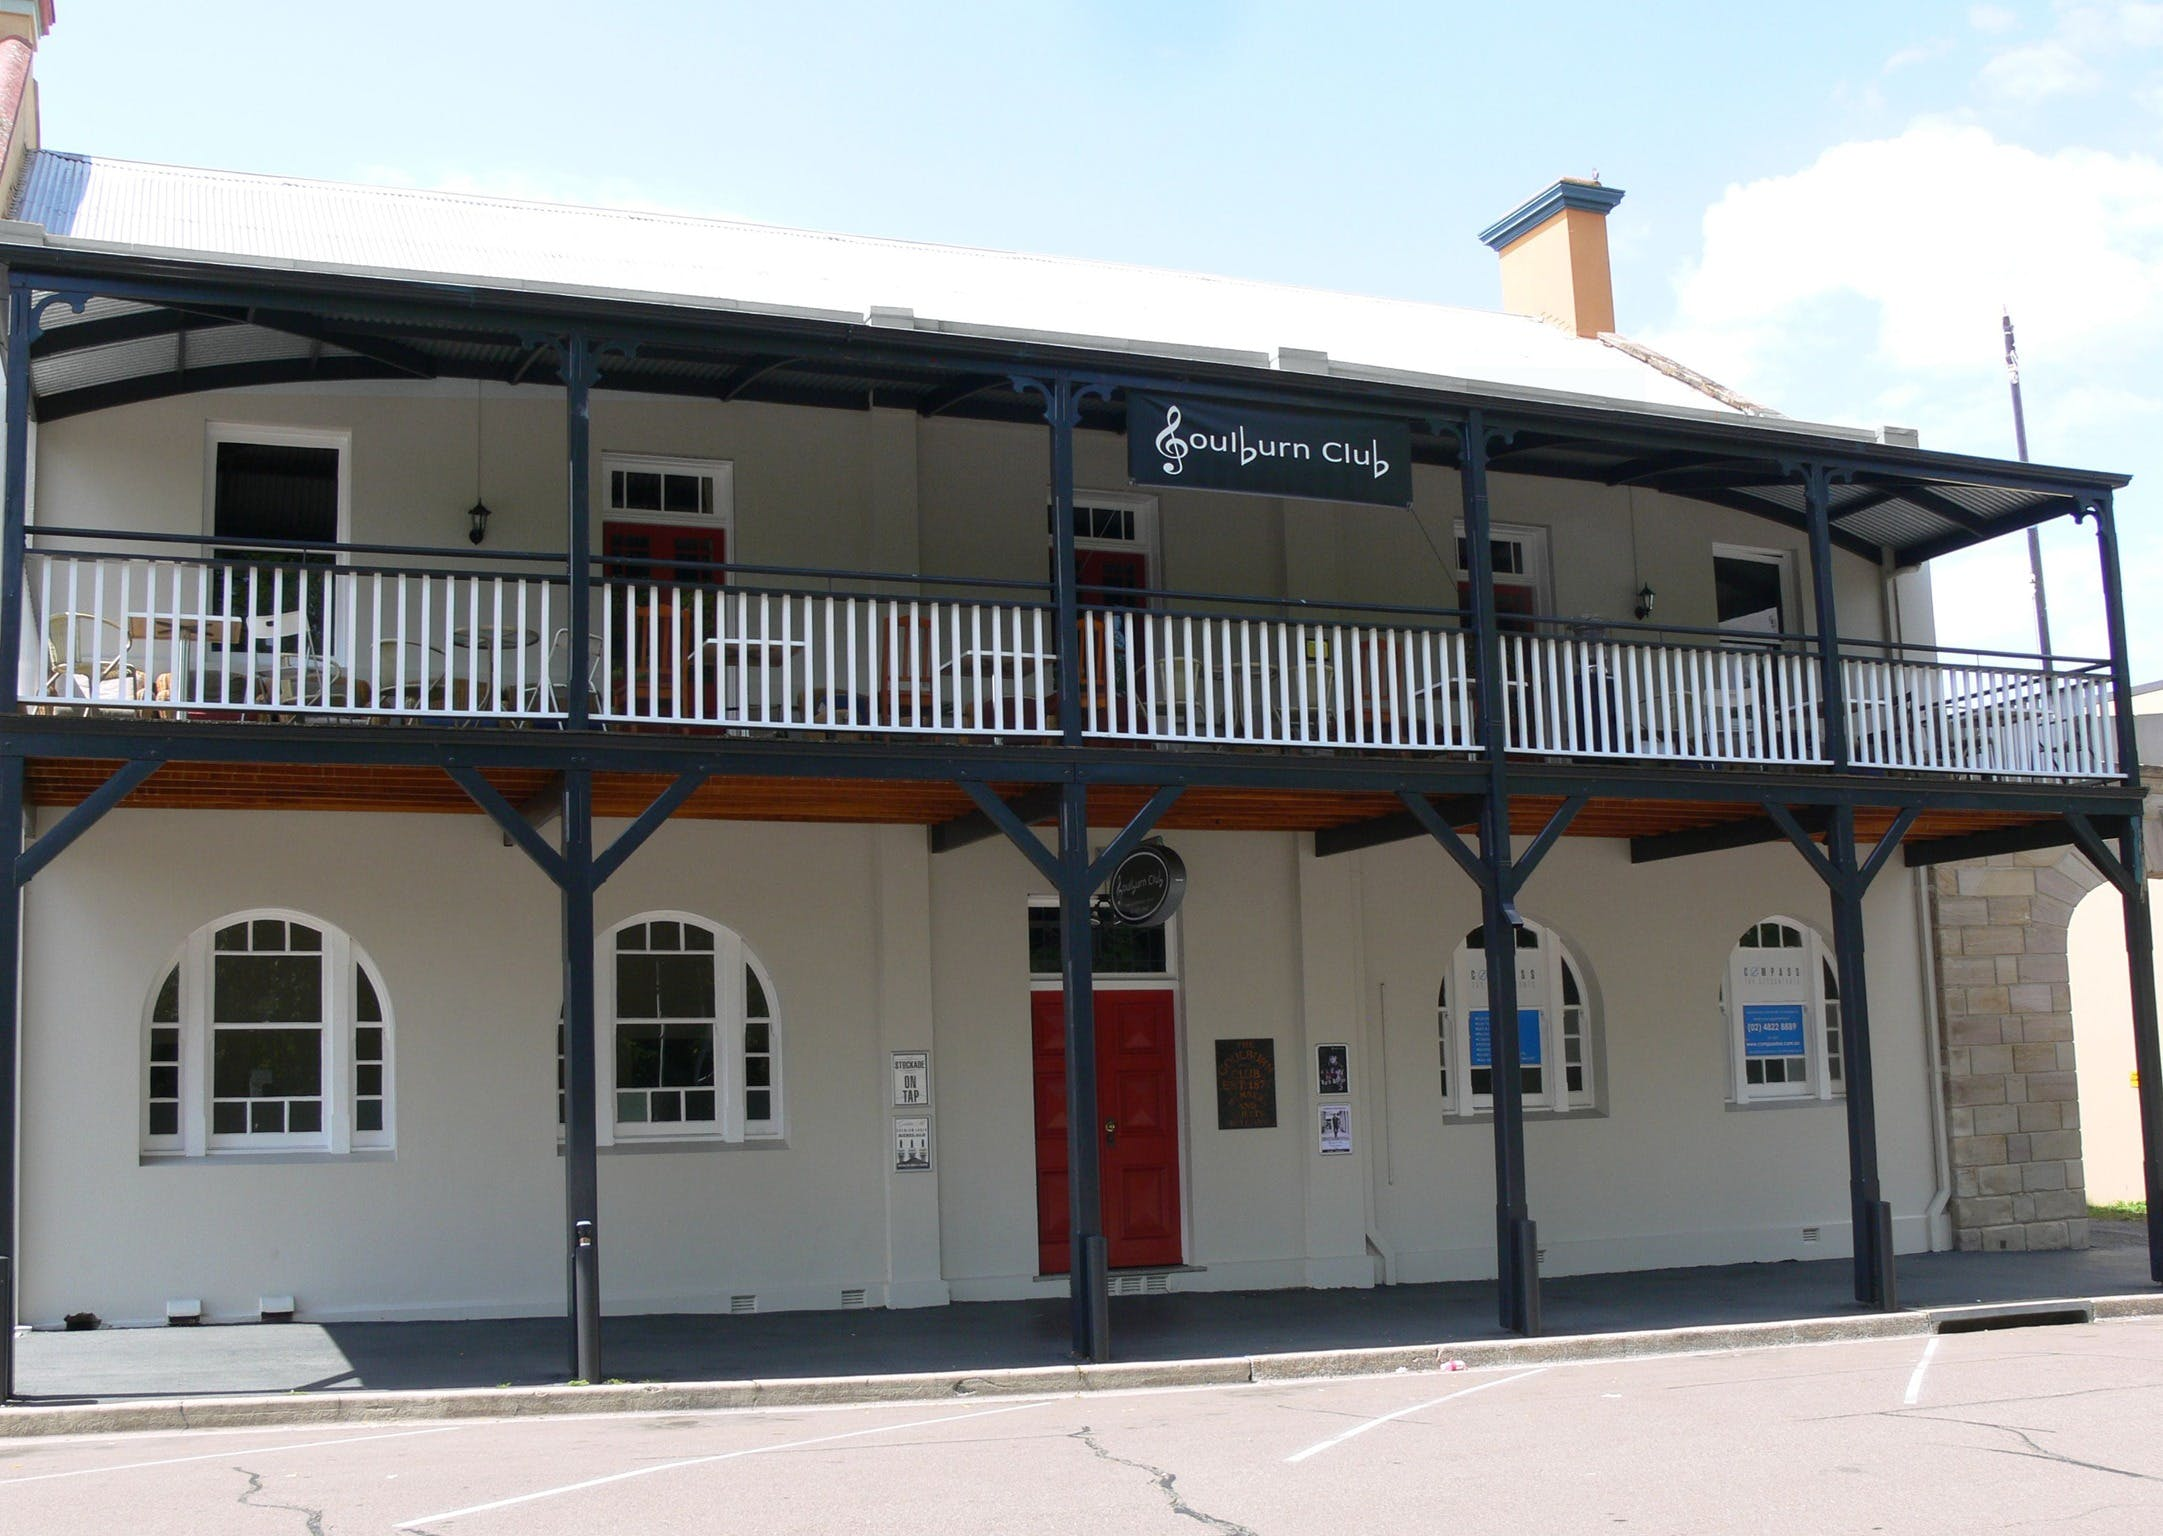 Open Mic Night at the Goulburn Club - Accommodation Tasmania